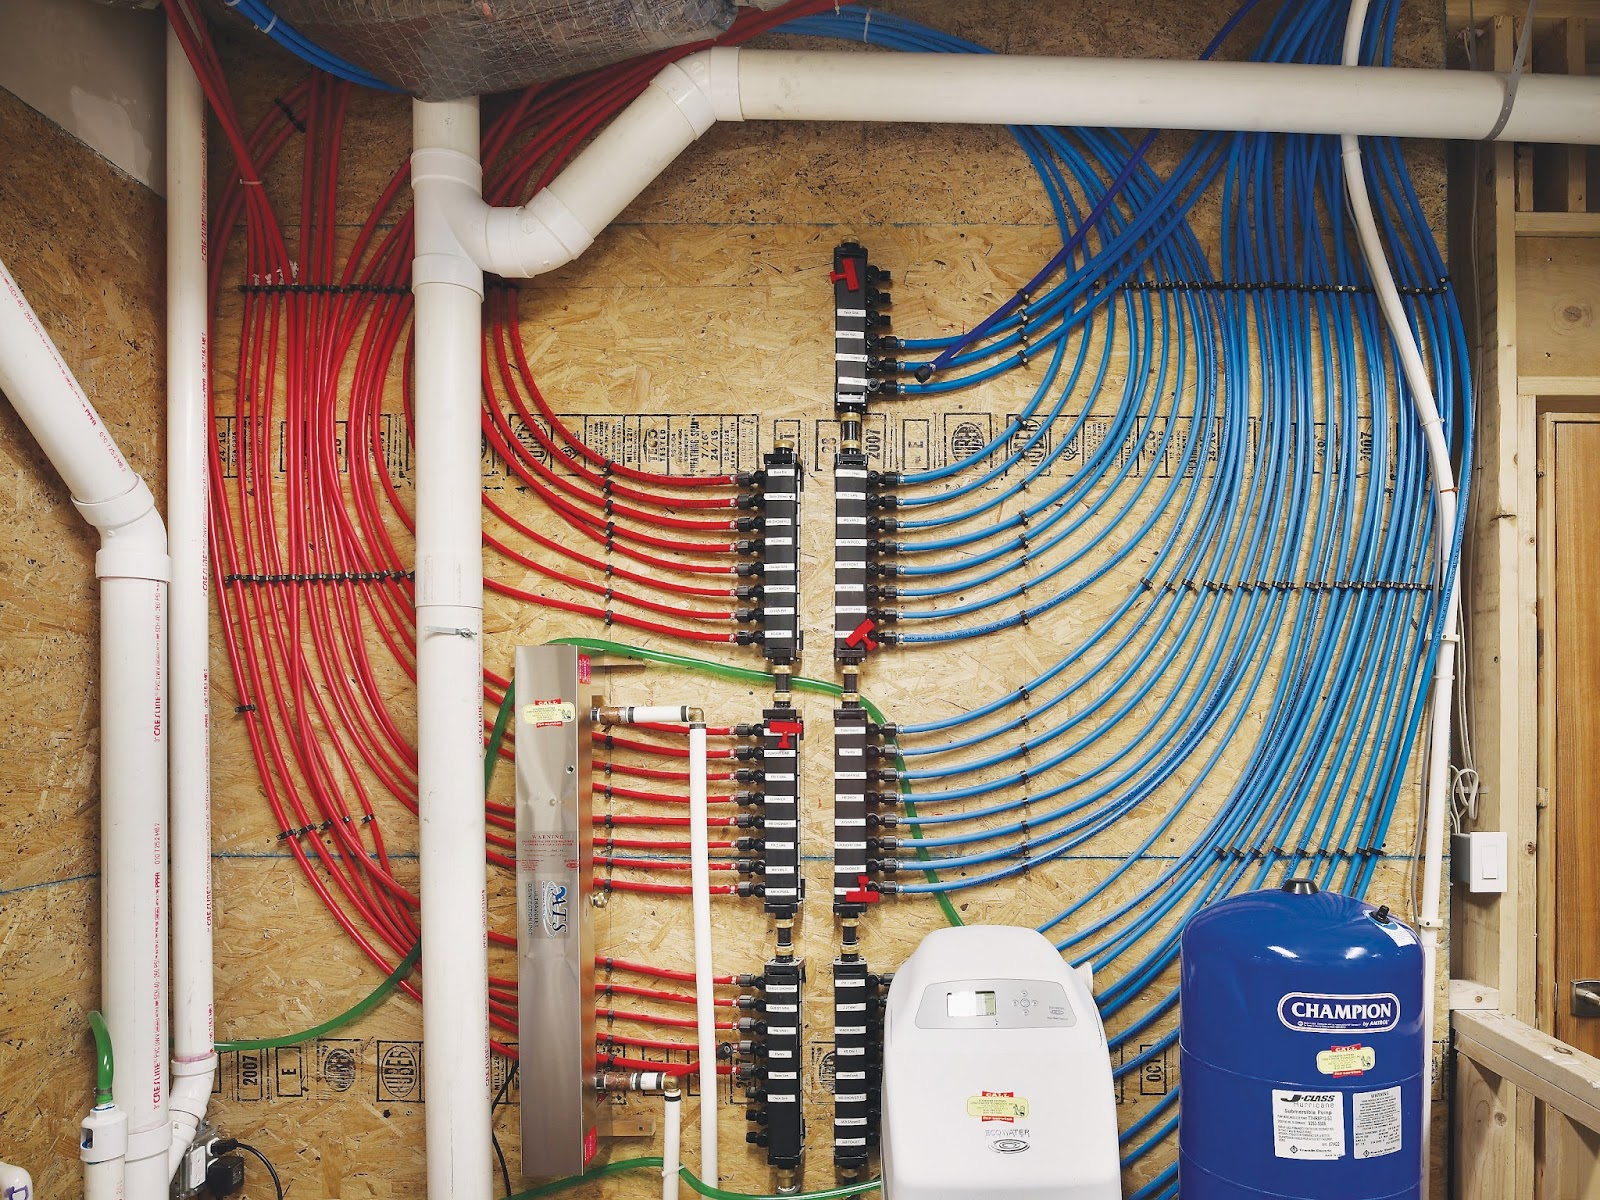 pex plumbing diagram mains smoke alarm wiring rehoboth farm diy a product review